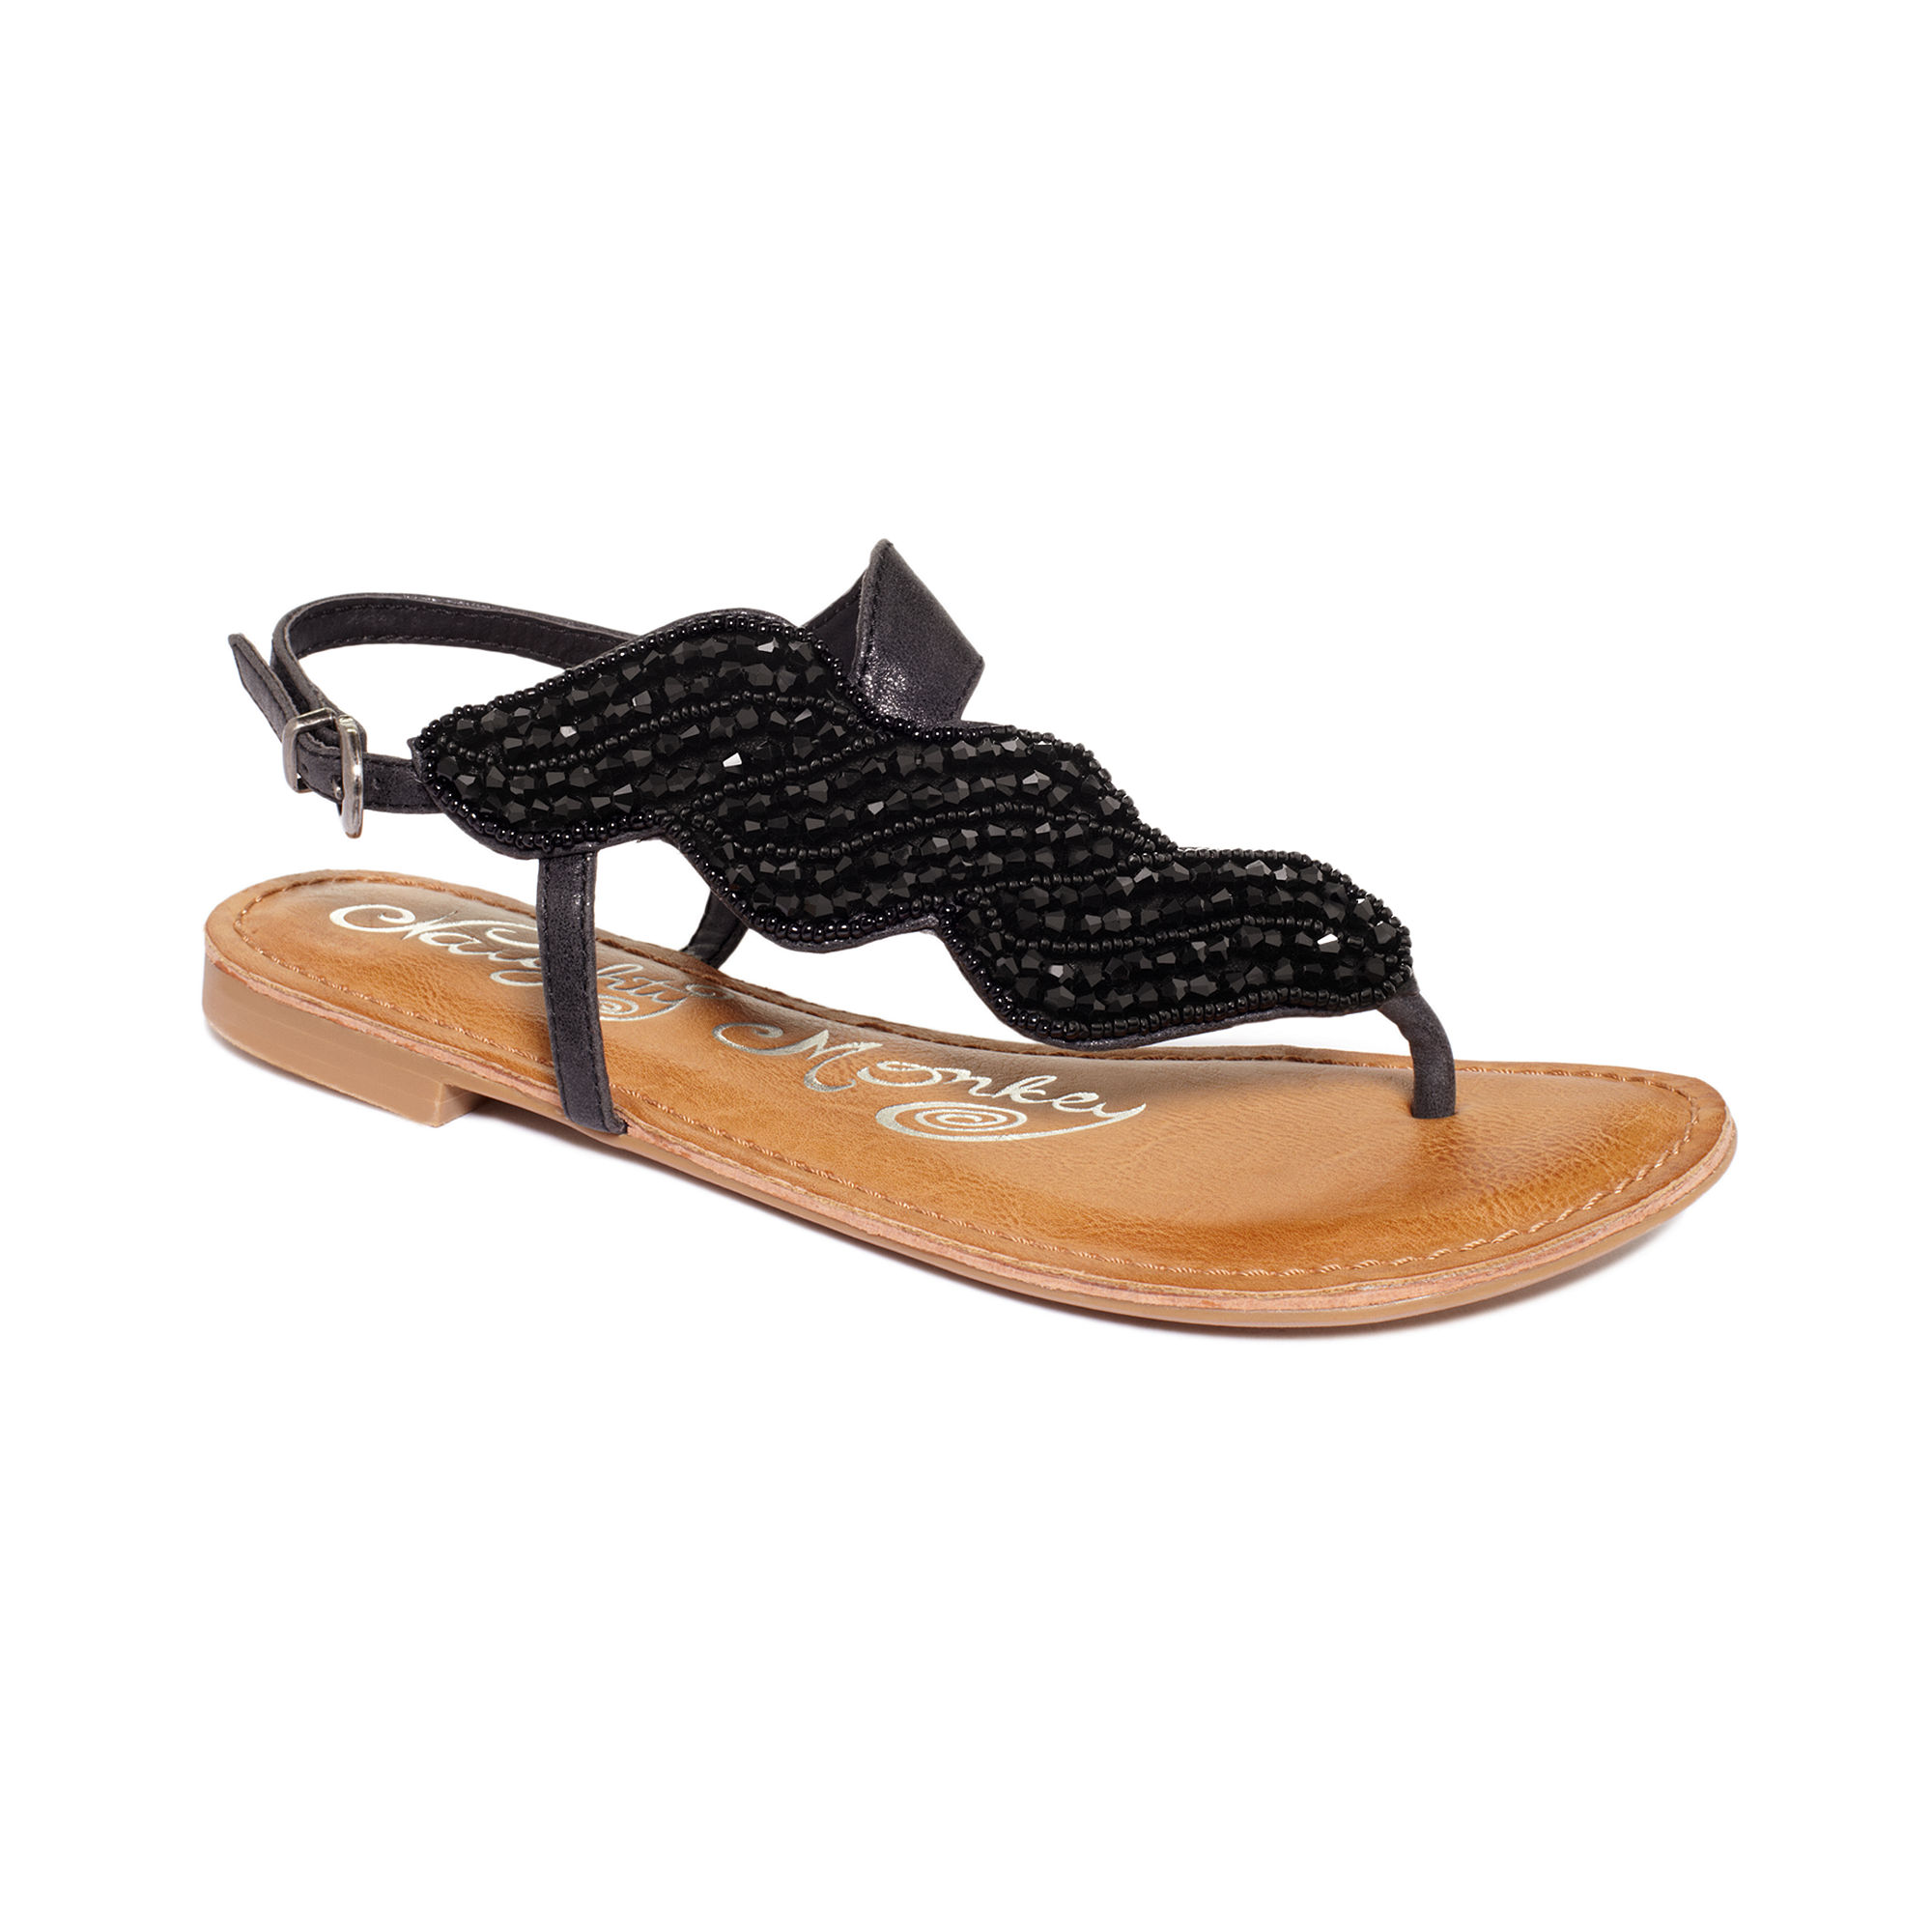 Naughty monkey Illusion A Symetrical Flat Sandals in Black ...